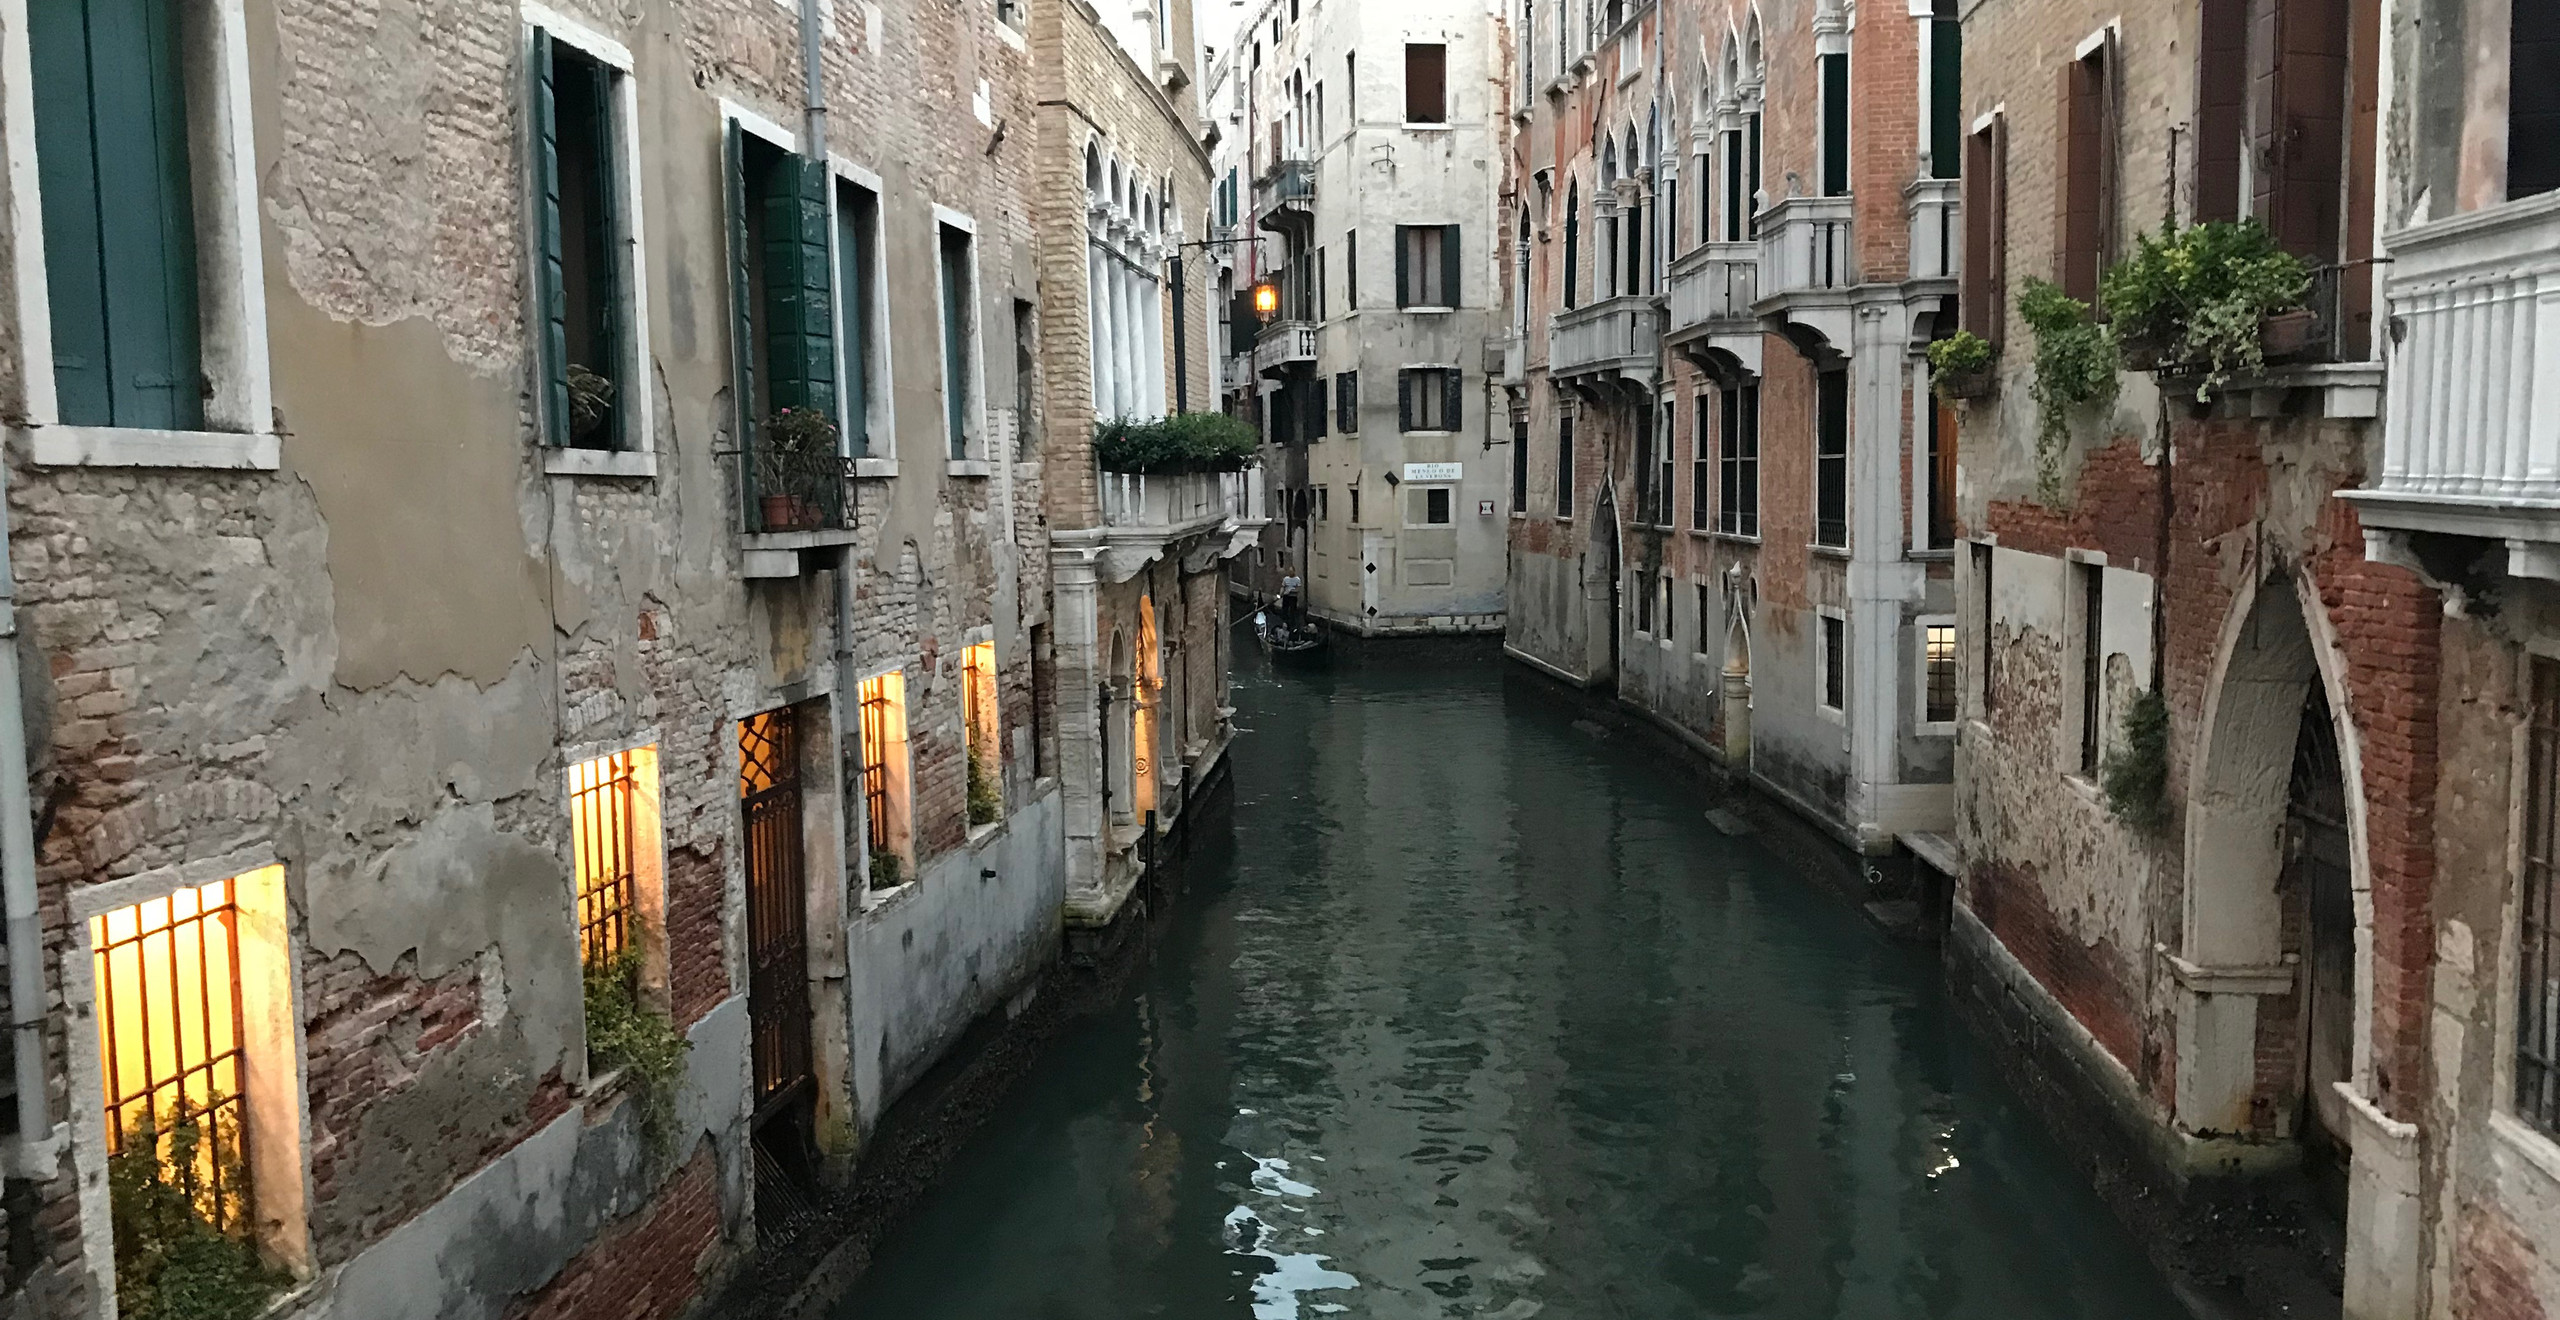 """I've always liked California's """"Venice Canals."""" Now I finally understand what inspired their construction."""